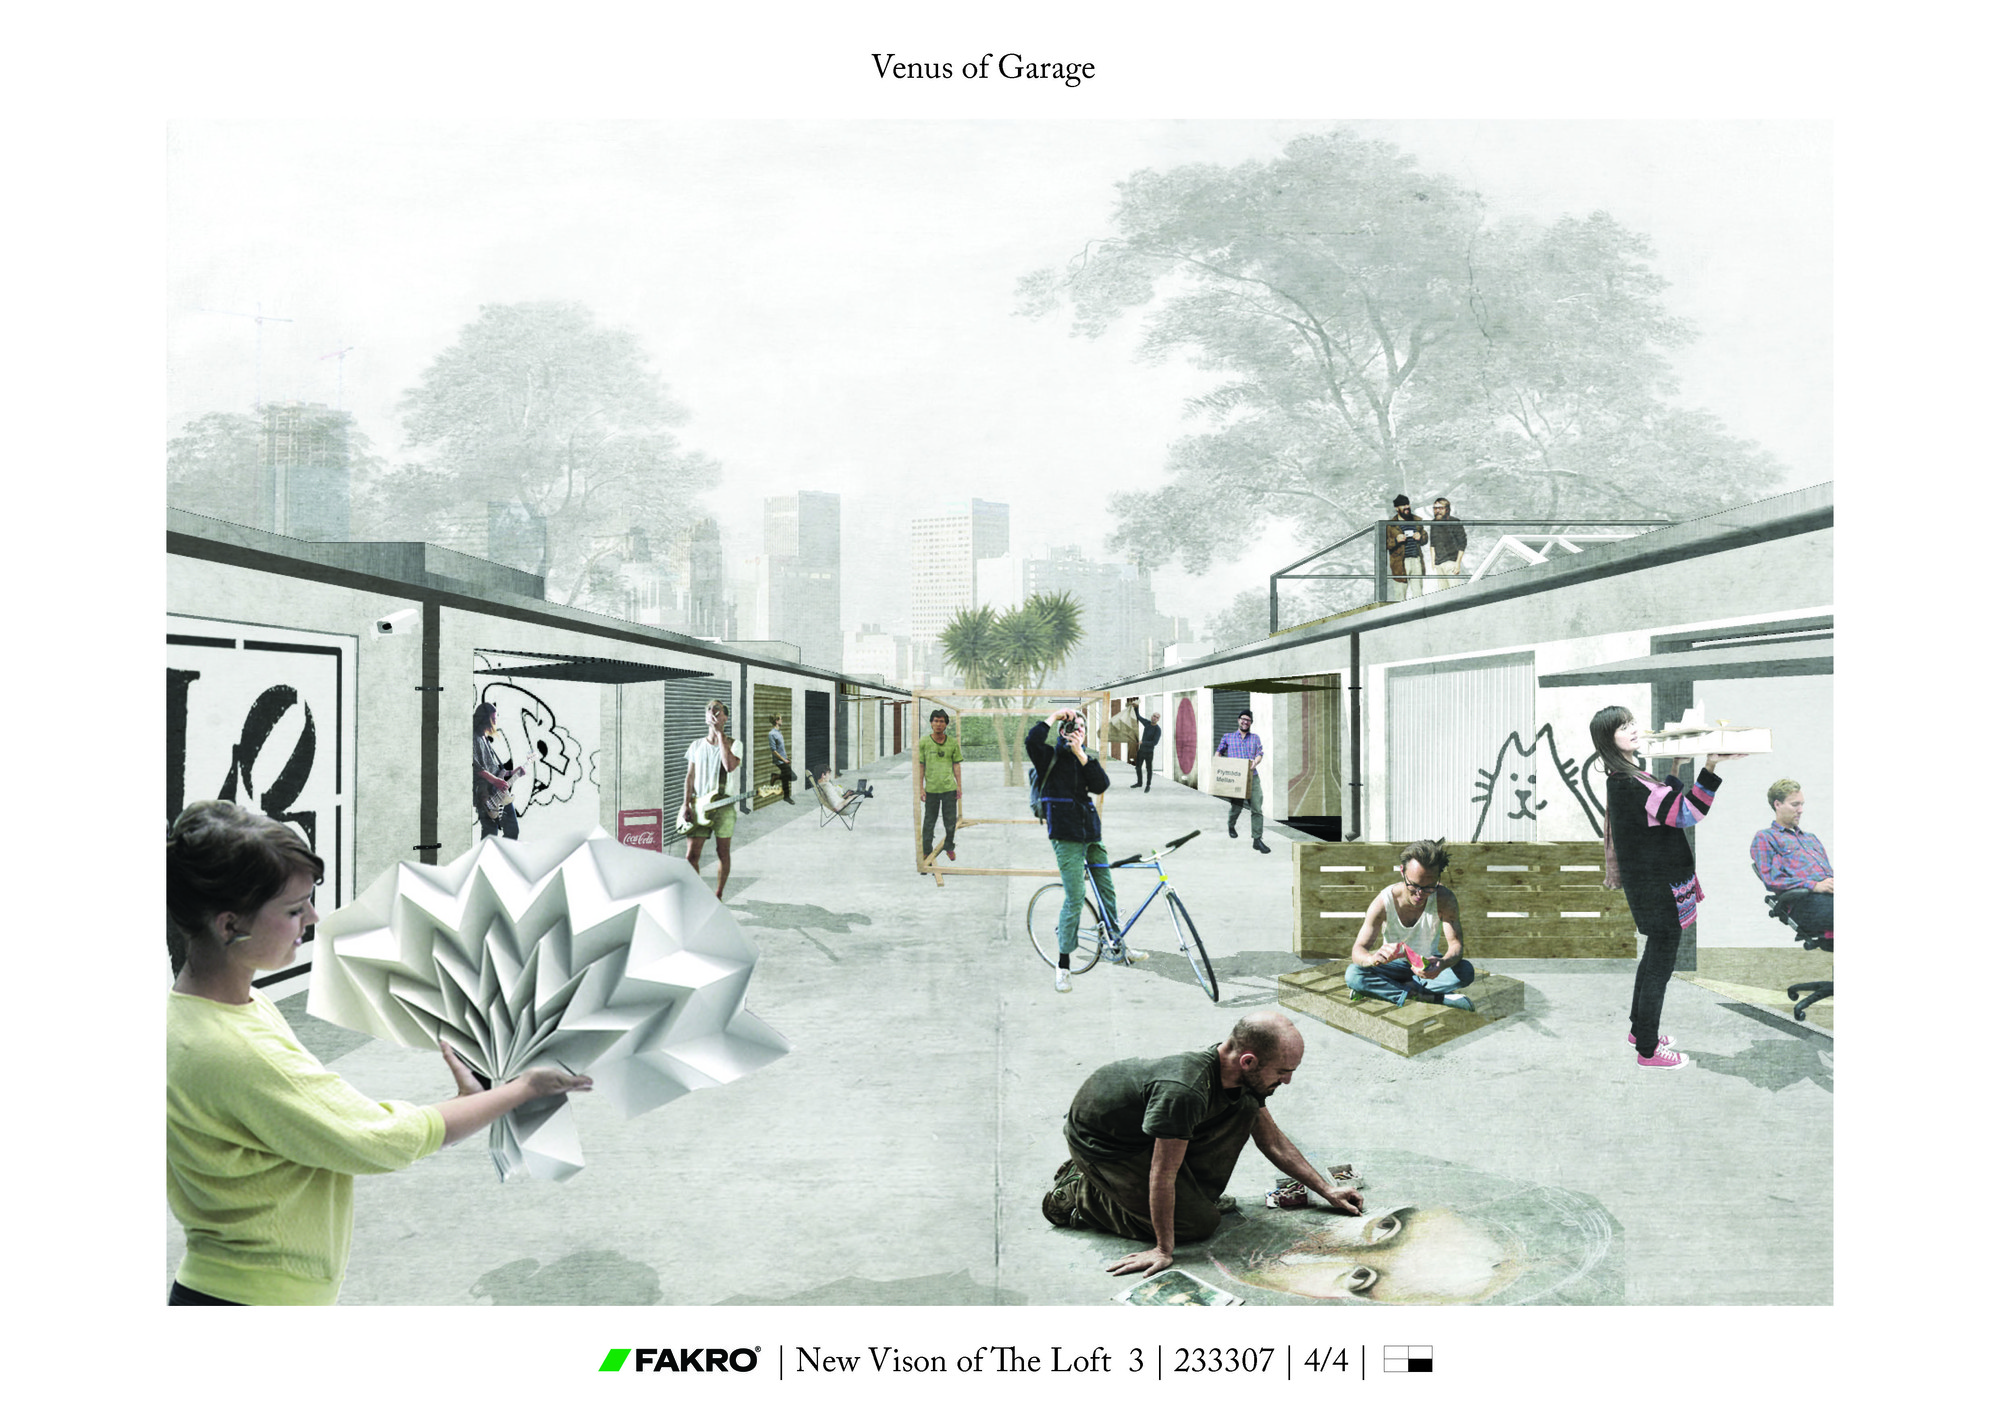 """Atelier of the Future"" Competition Results Announced, First Prize: VENUS OF GARAGE by Katarzyna Furgalińska and Michał Lisiński"